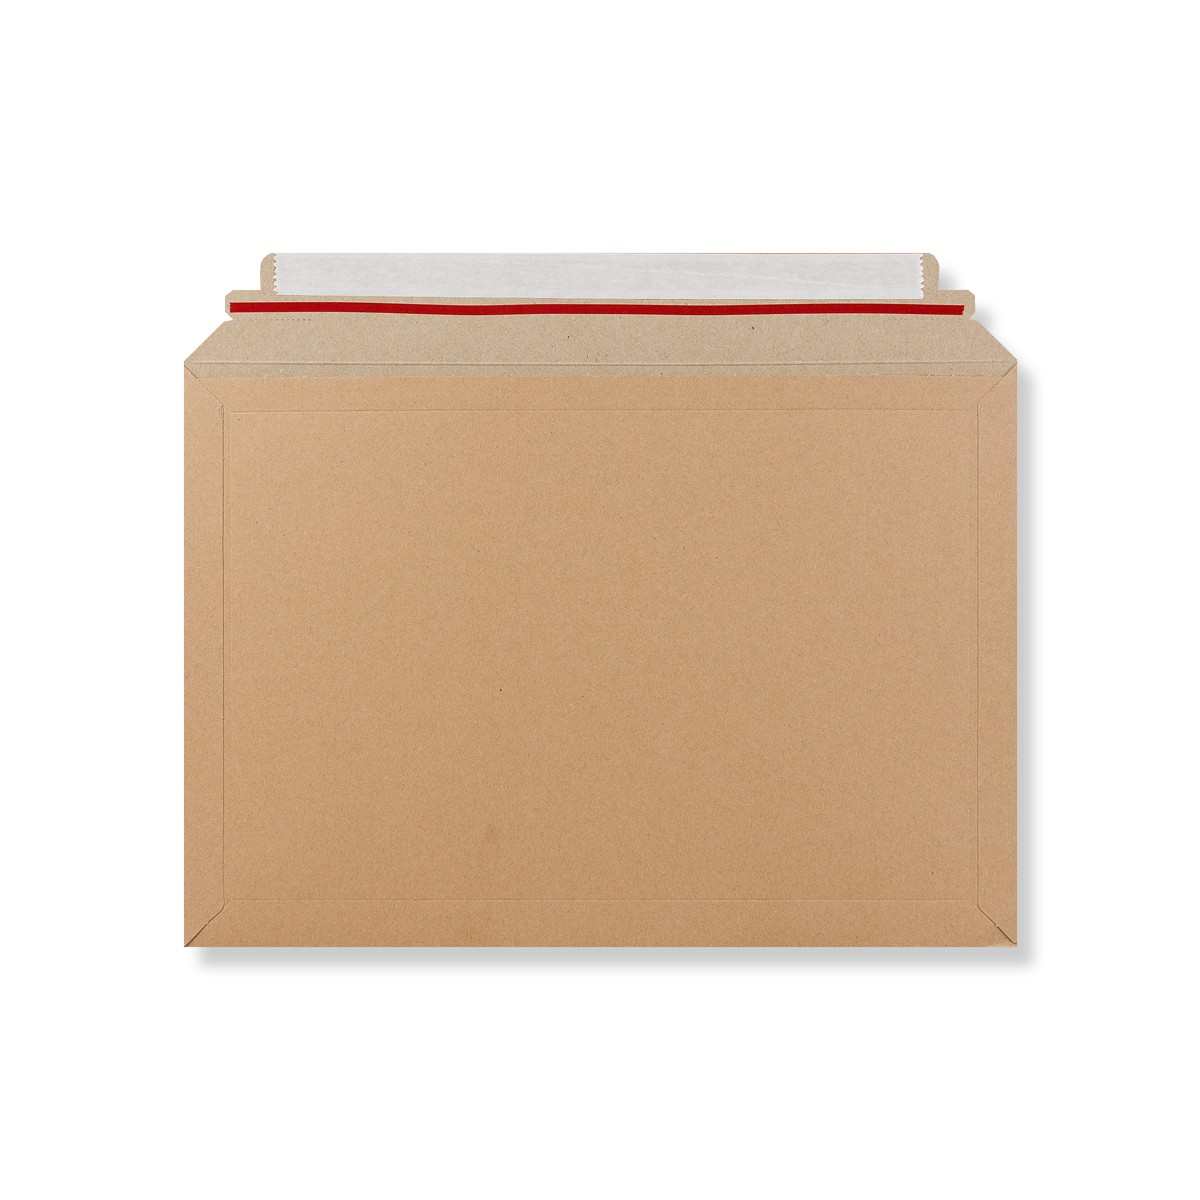 234 x 334mm CAPACITY BOOK MAILERS 400GSM